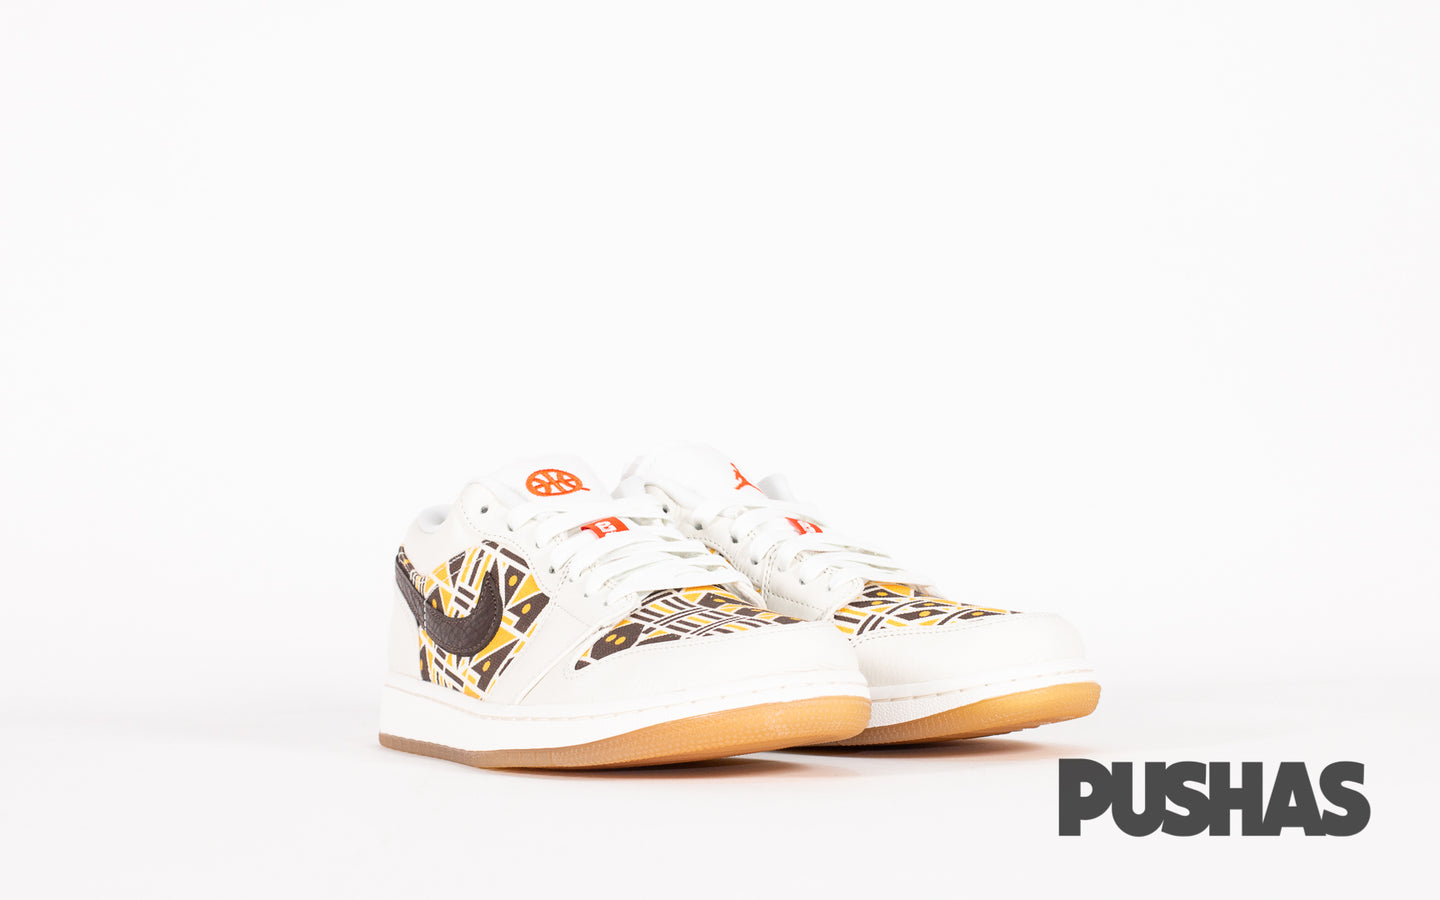 pushas-nike-Air-Jordan-1-Low-Quai54